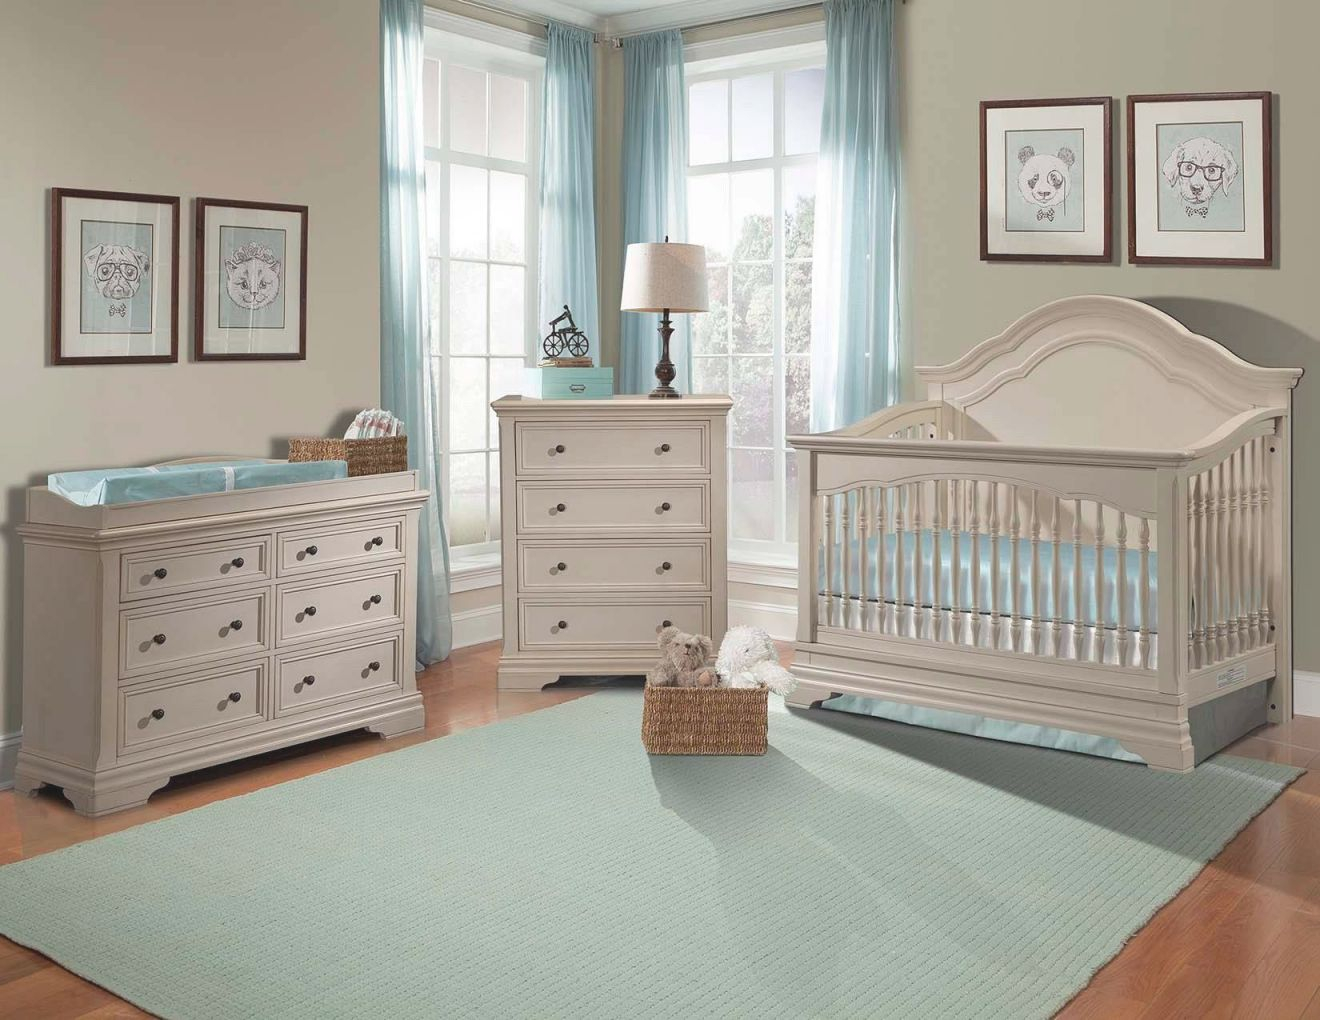 Delectable White Furniture Set Nursery Kids Room Piece Baby throughout Unique Baby Bedroom Furniture Sets